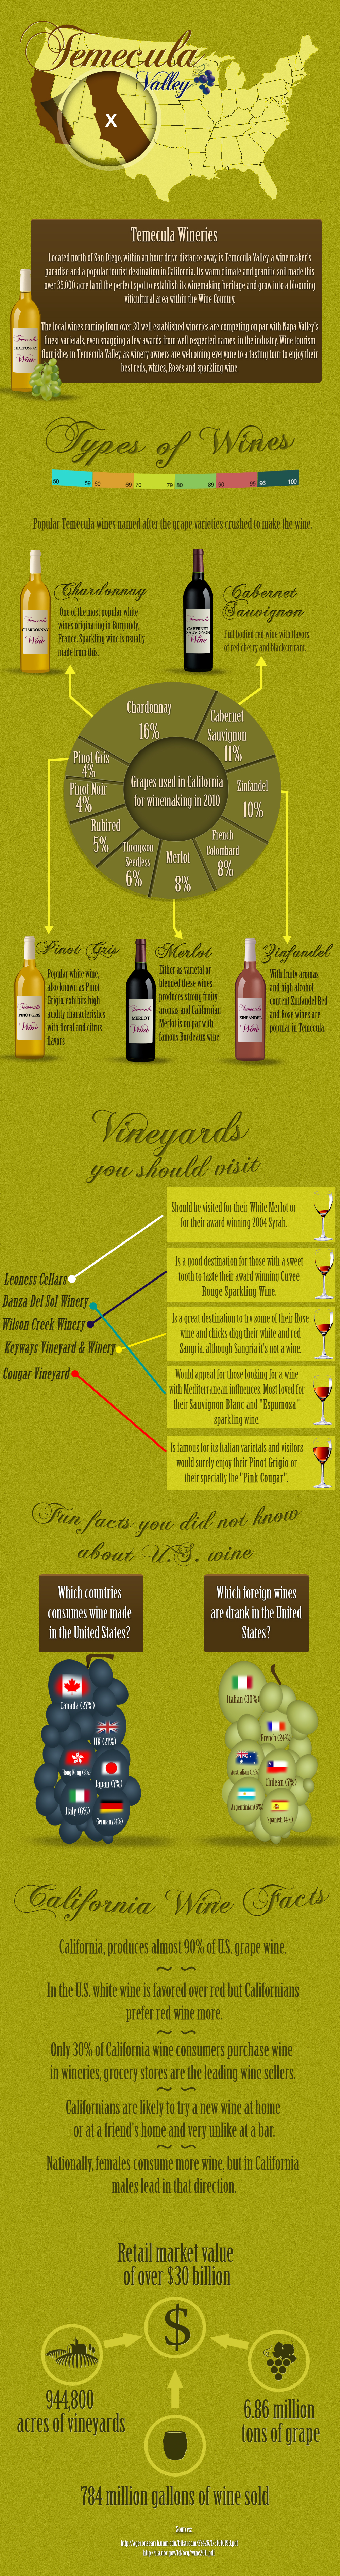 Temecula Valley Wineries